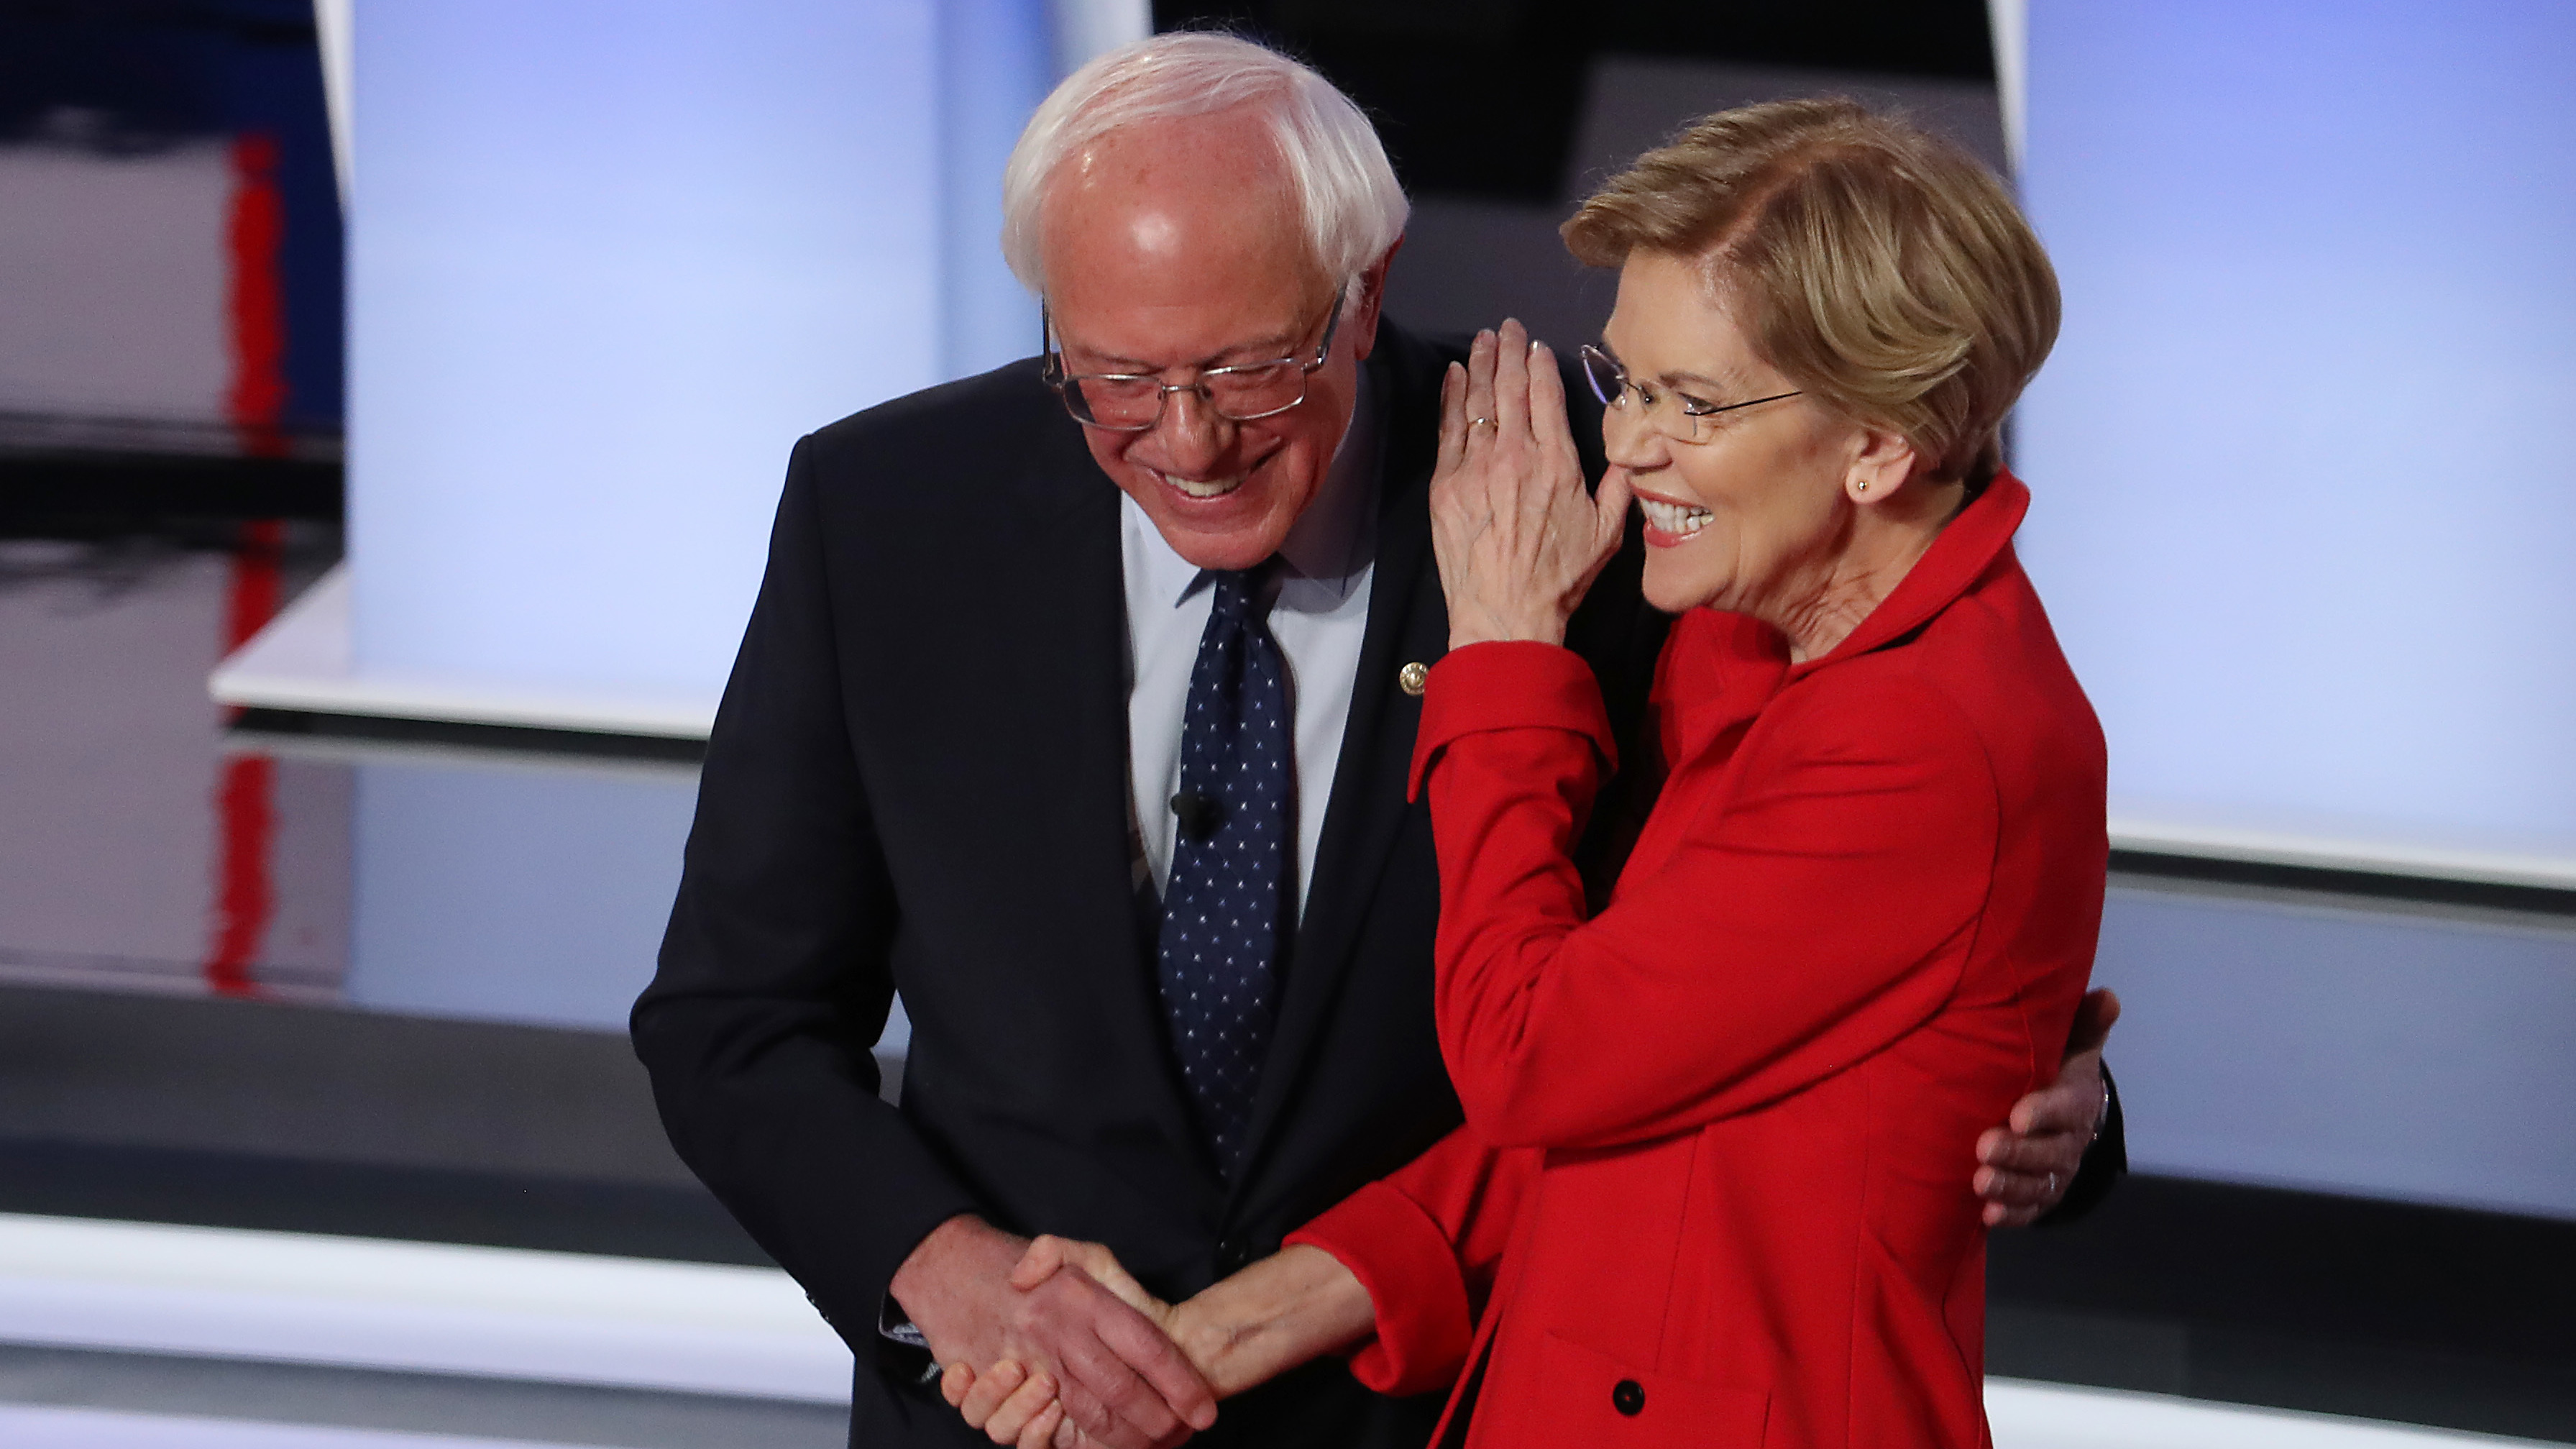 Sanders and Warren greet each other at the start of Tuesday night's debate.